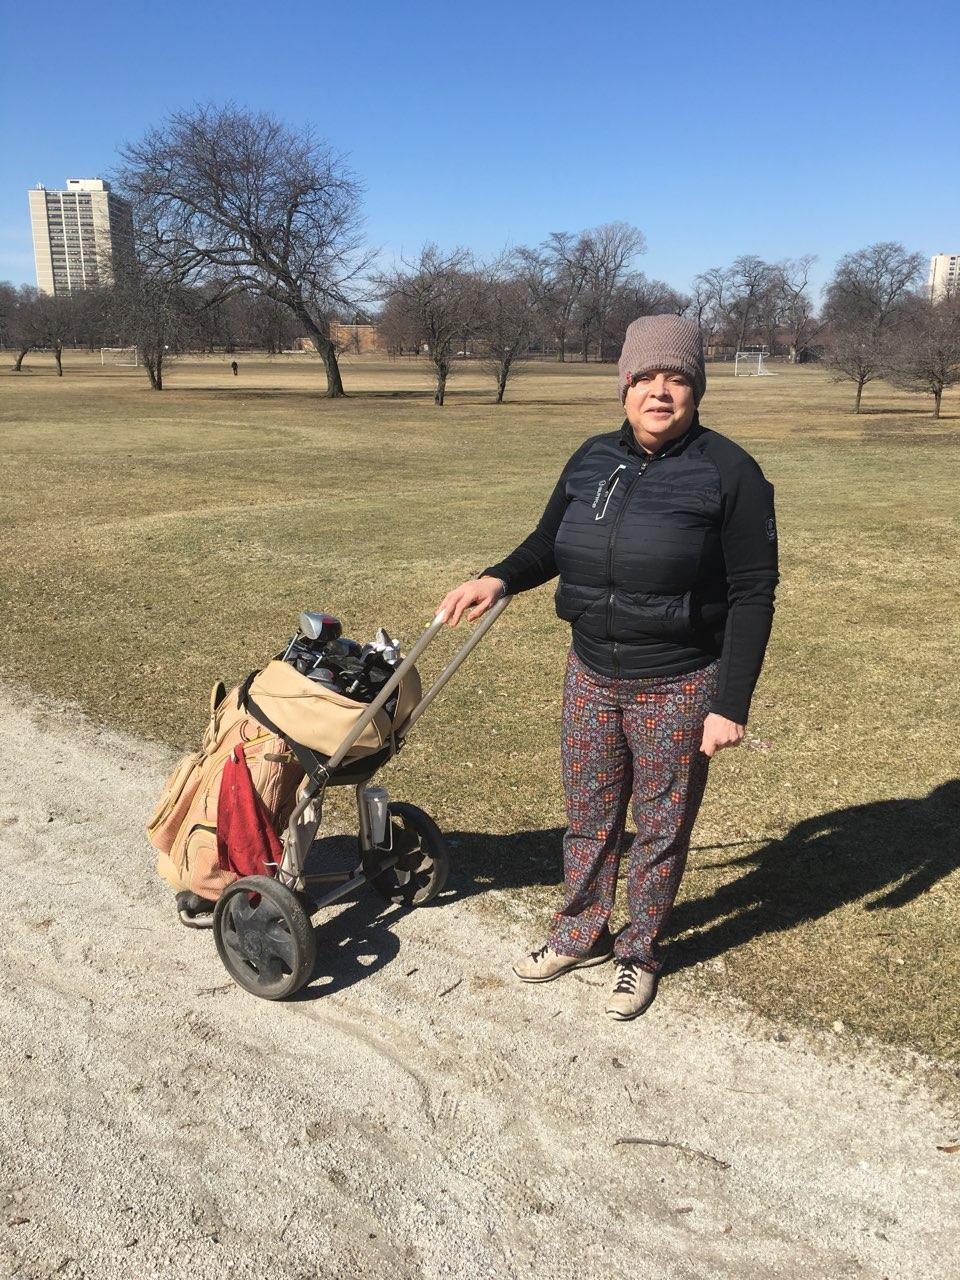 EARLY SPRING GOLFING AT JACKSON PARK